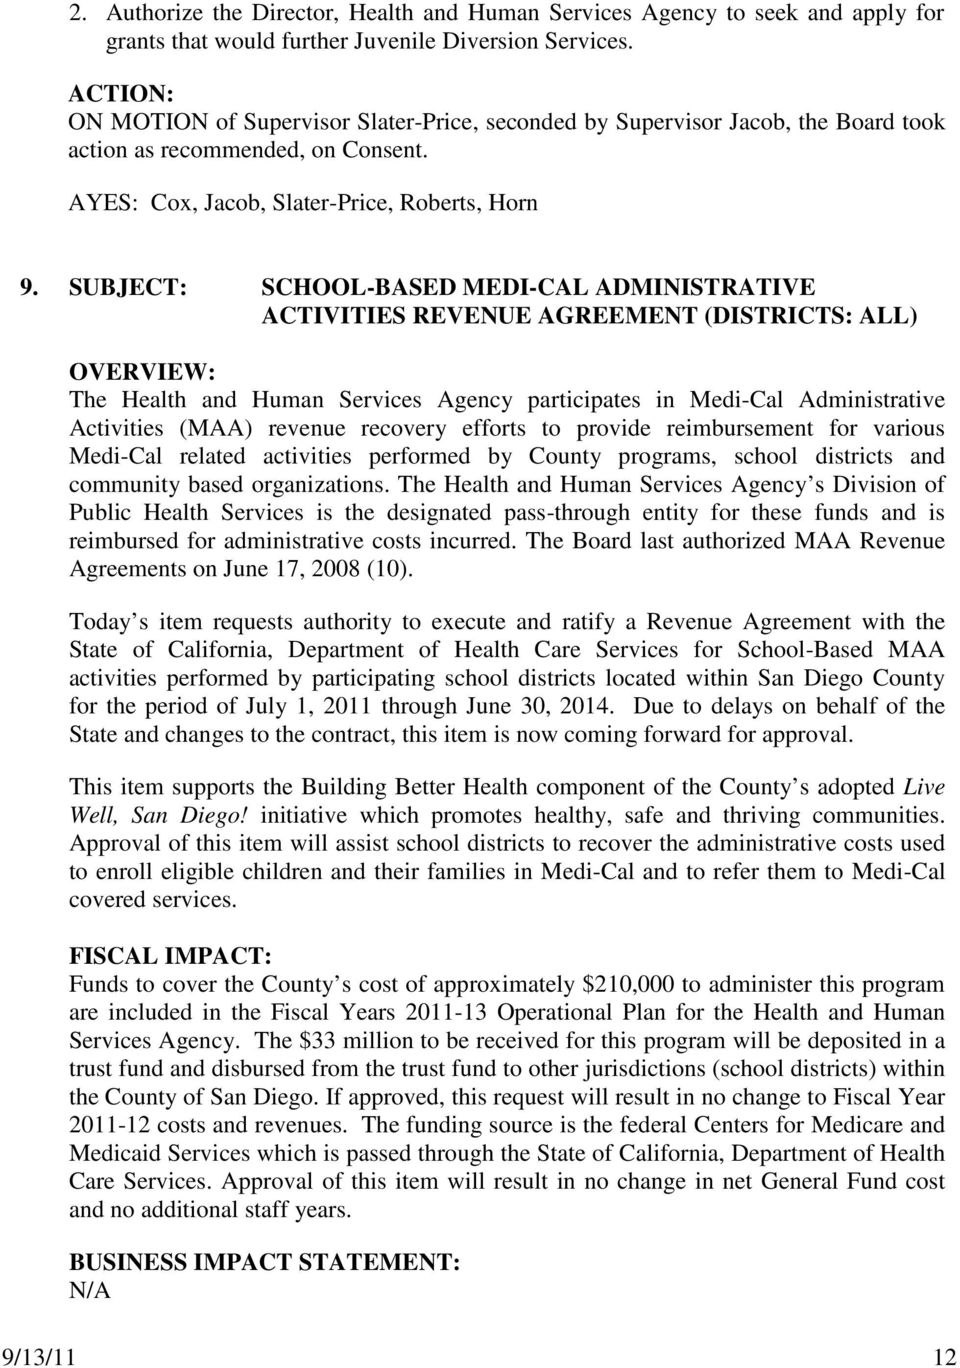 SUBJECT: SCHOOL-BASED MEDI-CAL ADMINISTRATIVE ACTIVITIES REVENUE AGREEMENT (DISTRICTS: ALL) The Health and Human Services Agency participates in Medi-Cal Administrative Activities (MAA) revenue